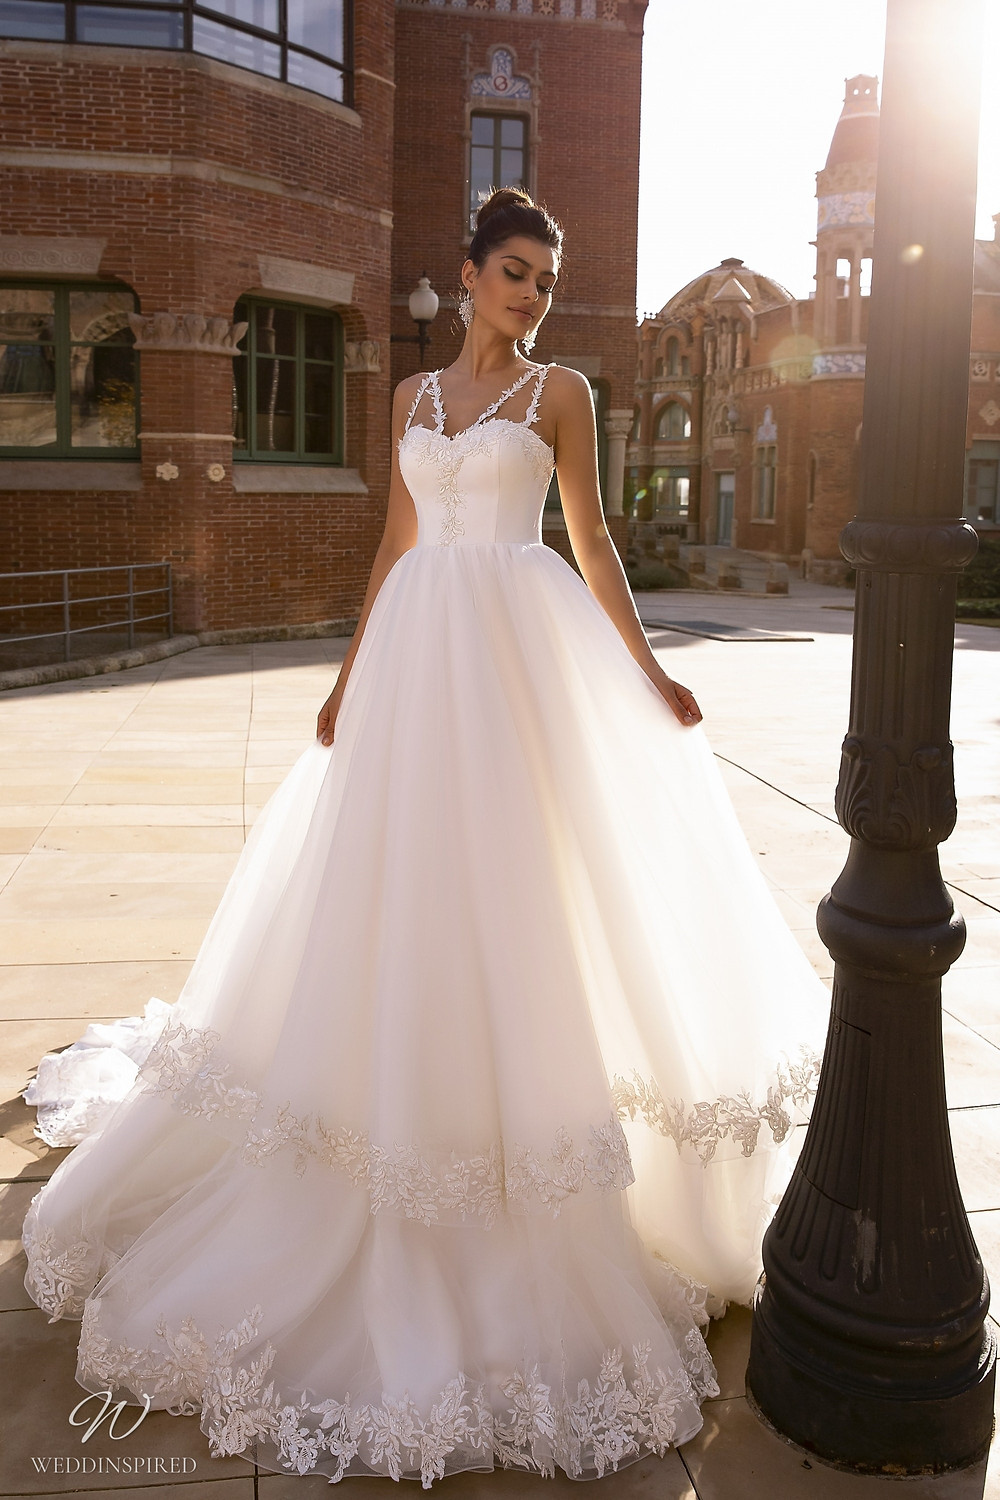 A Maks Mariano princess ball gown wedding dress with layered tulle ruffle skirt